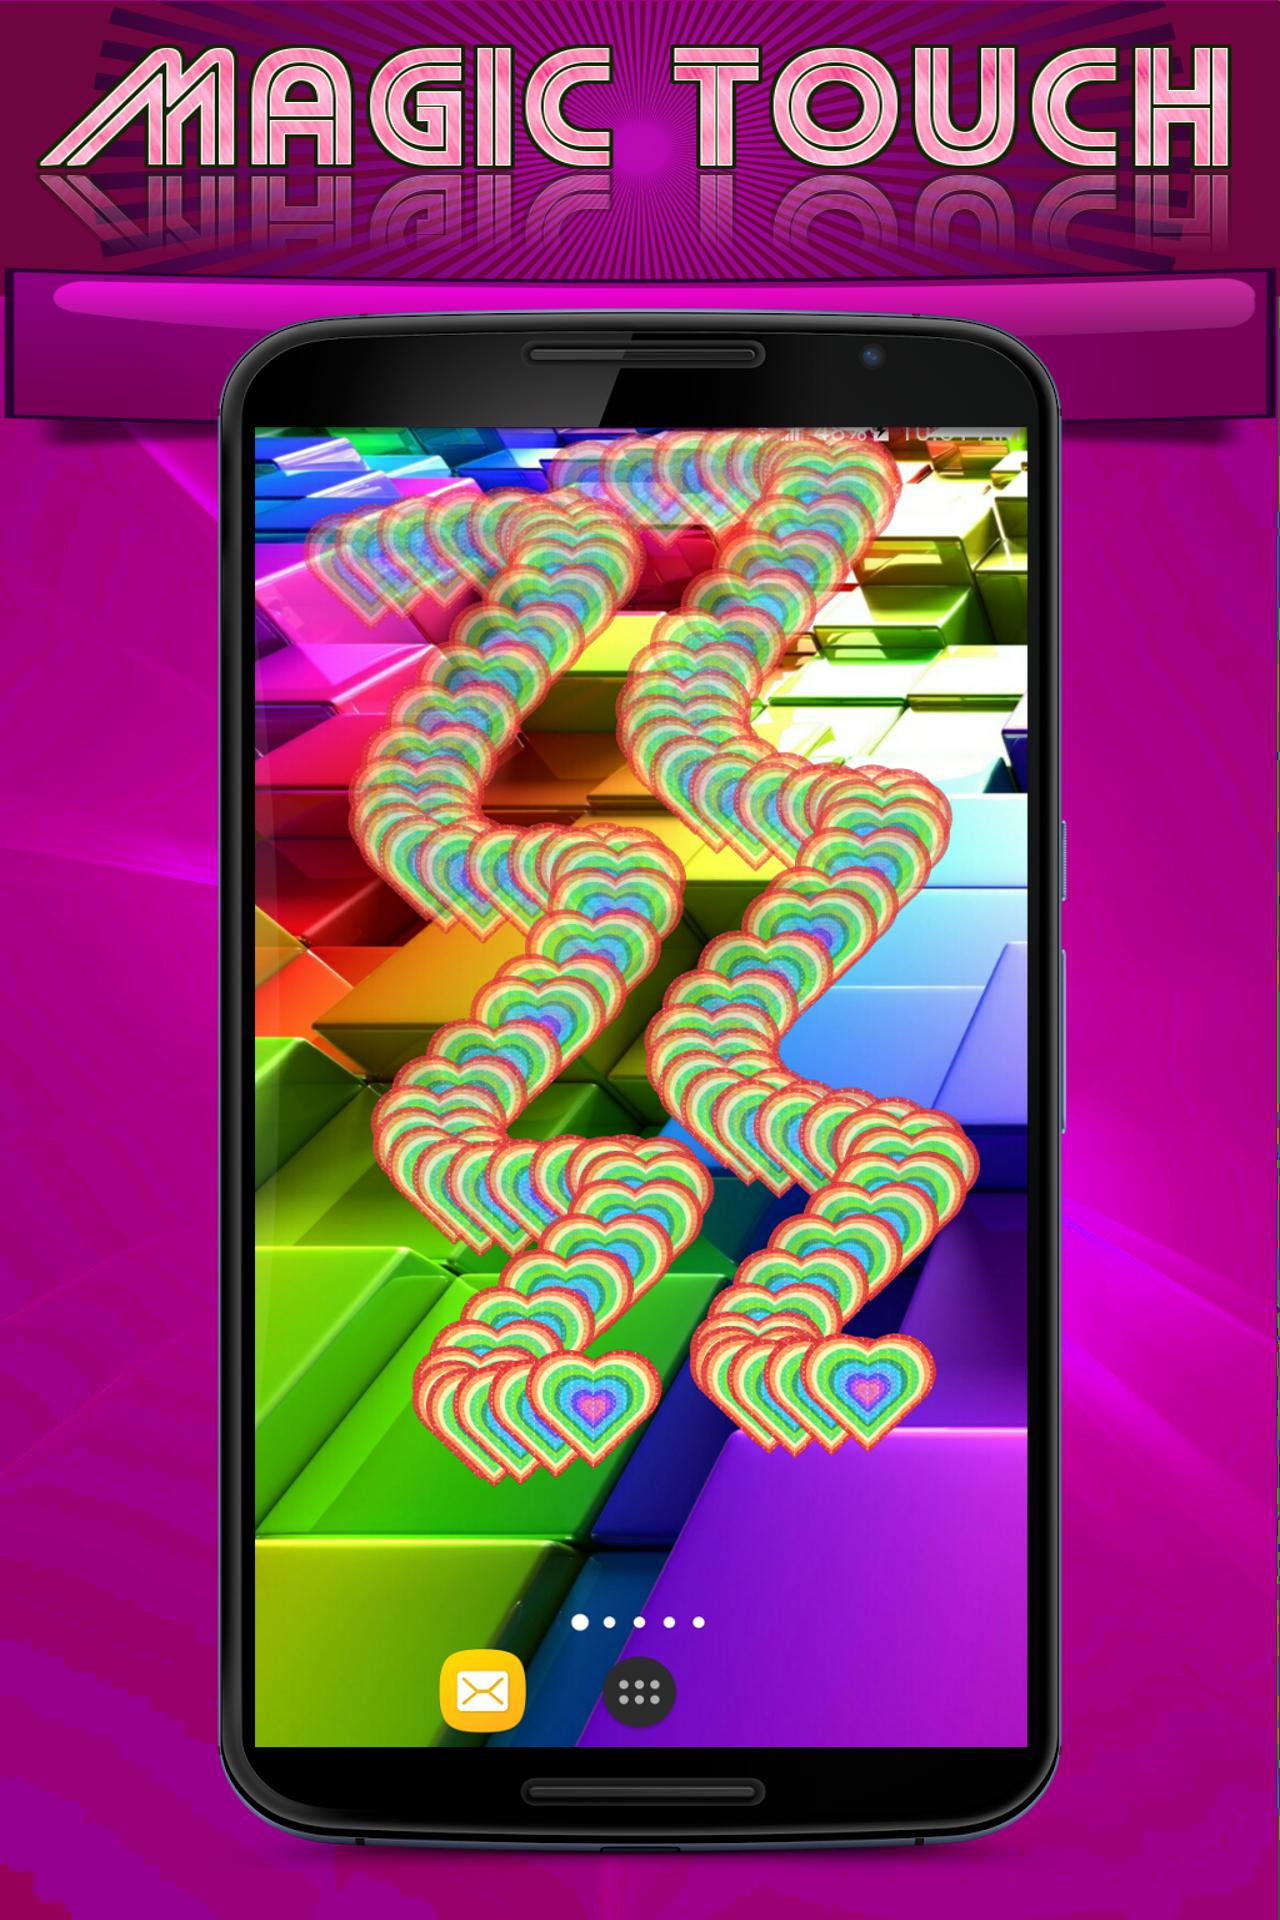 3D Parallax Background Creator for Android - APK Download